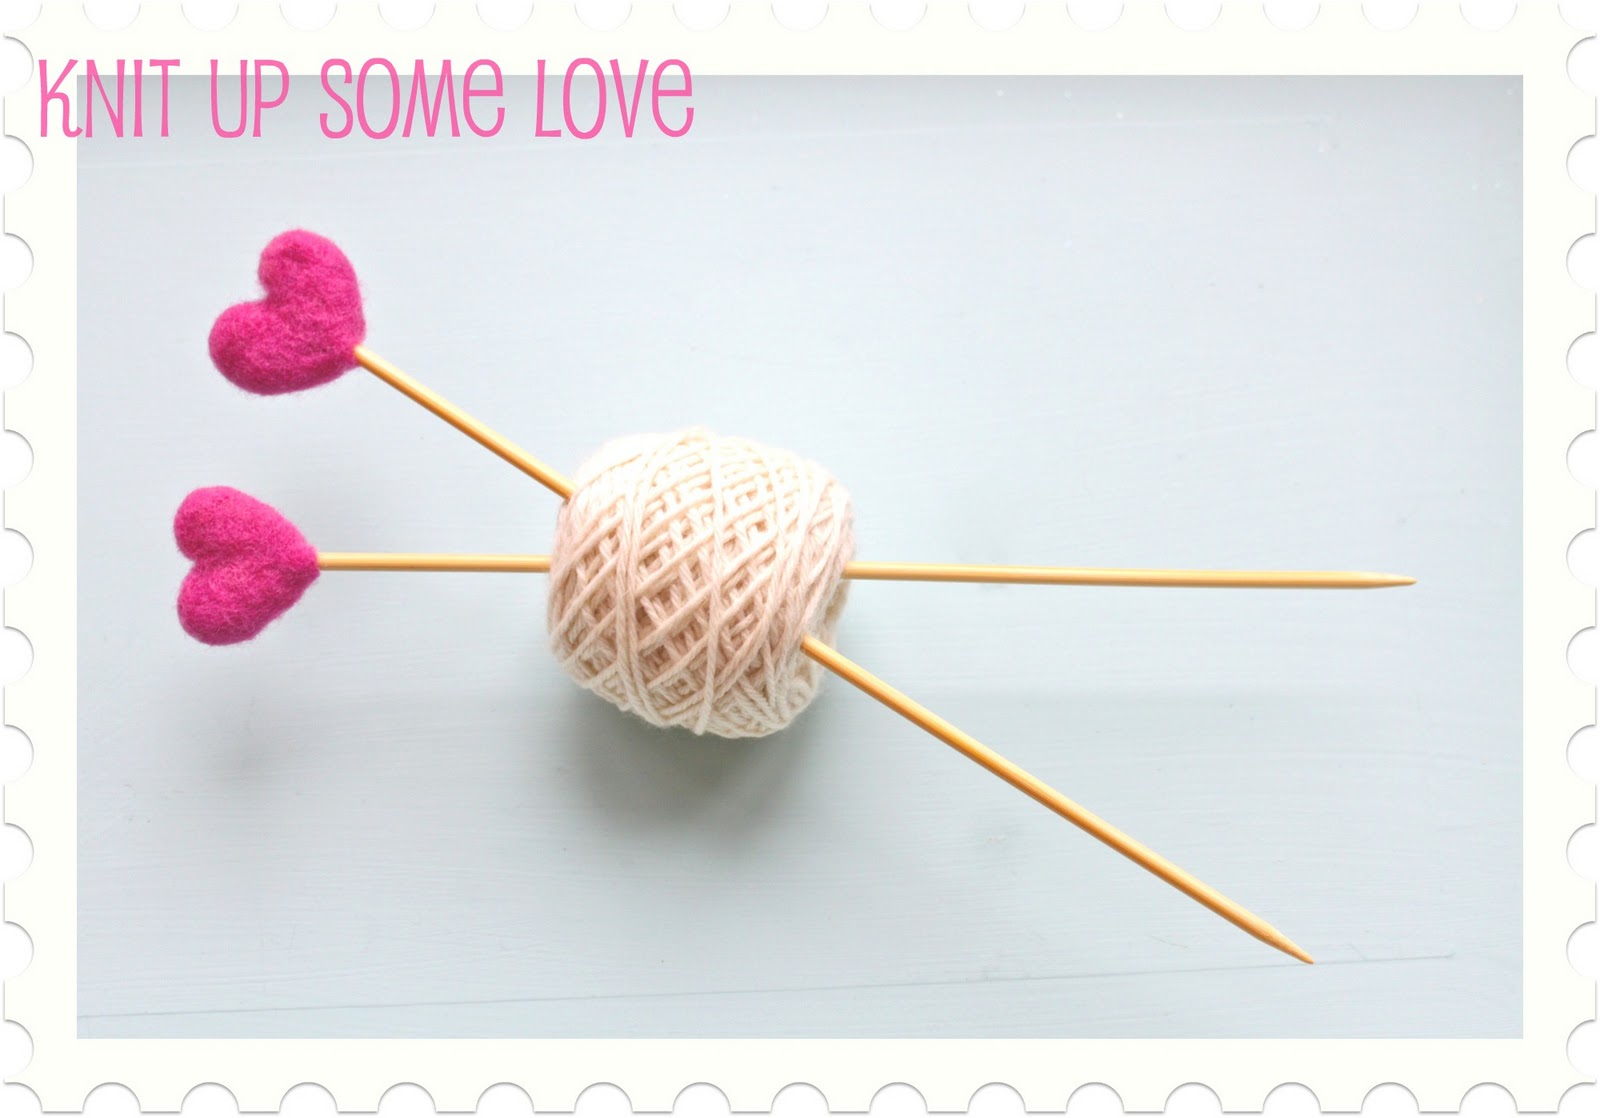 Love Knitting Uk : Helana and ali knit up some love